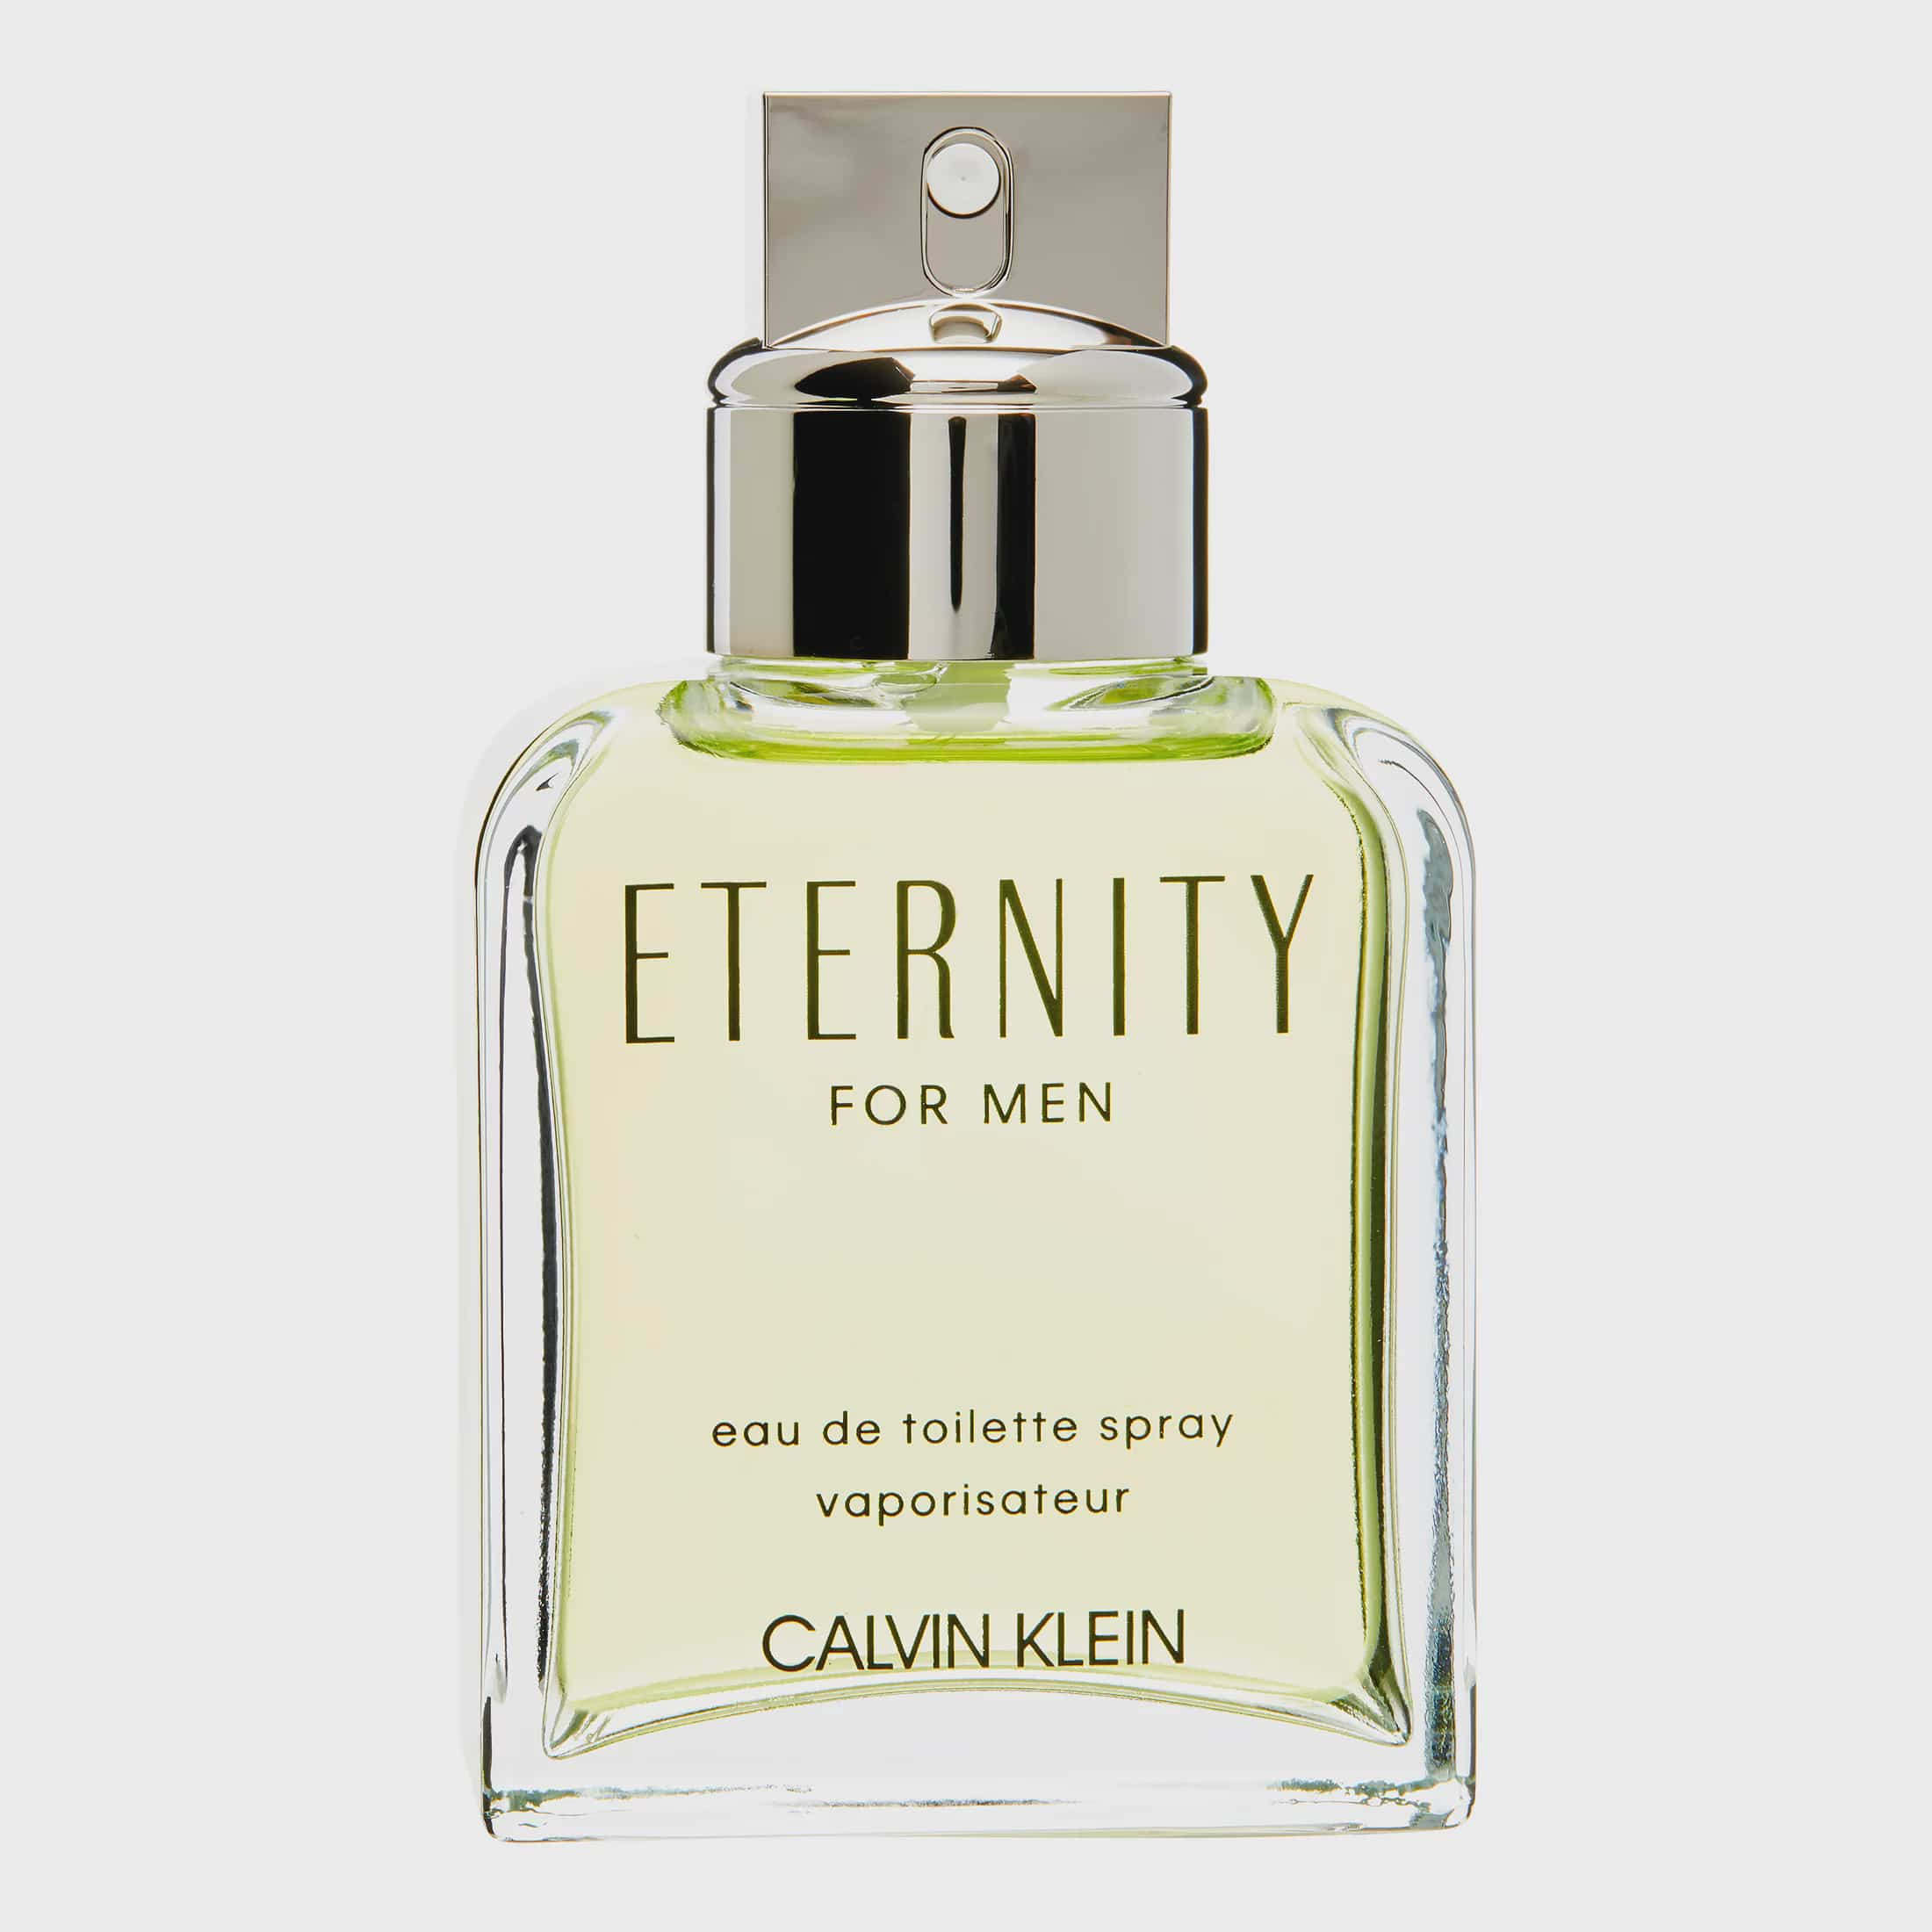 Calvin Klein Calvin Klein Eternity Eau De Toilette Cologne For Men 3 4 Oz Walmart Com Walmart Com